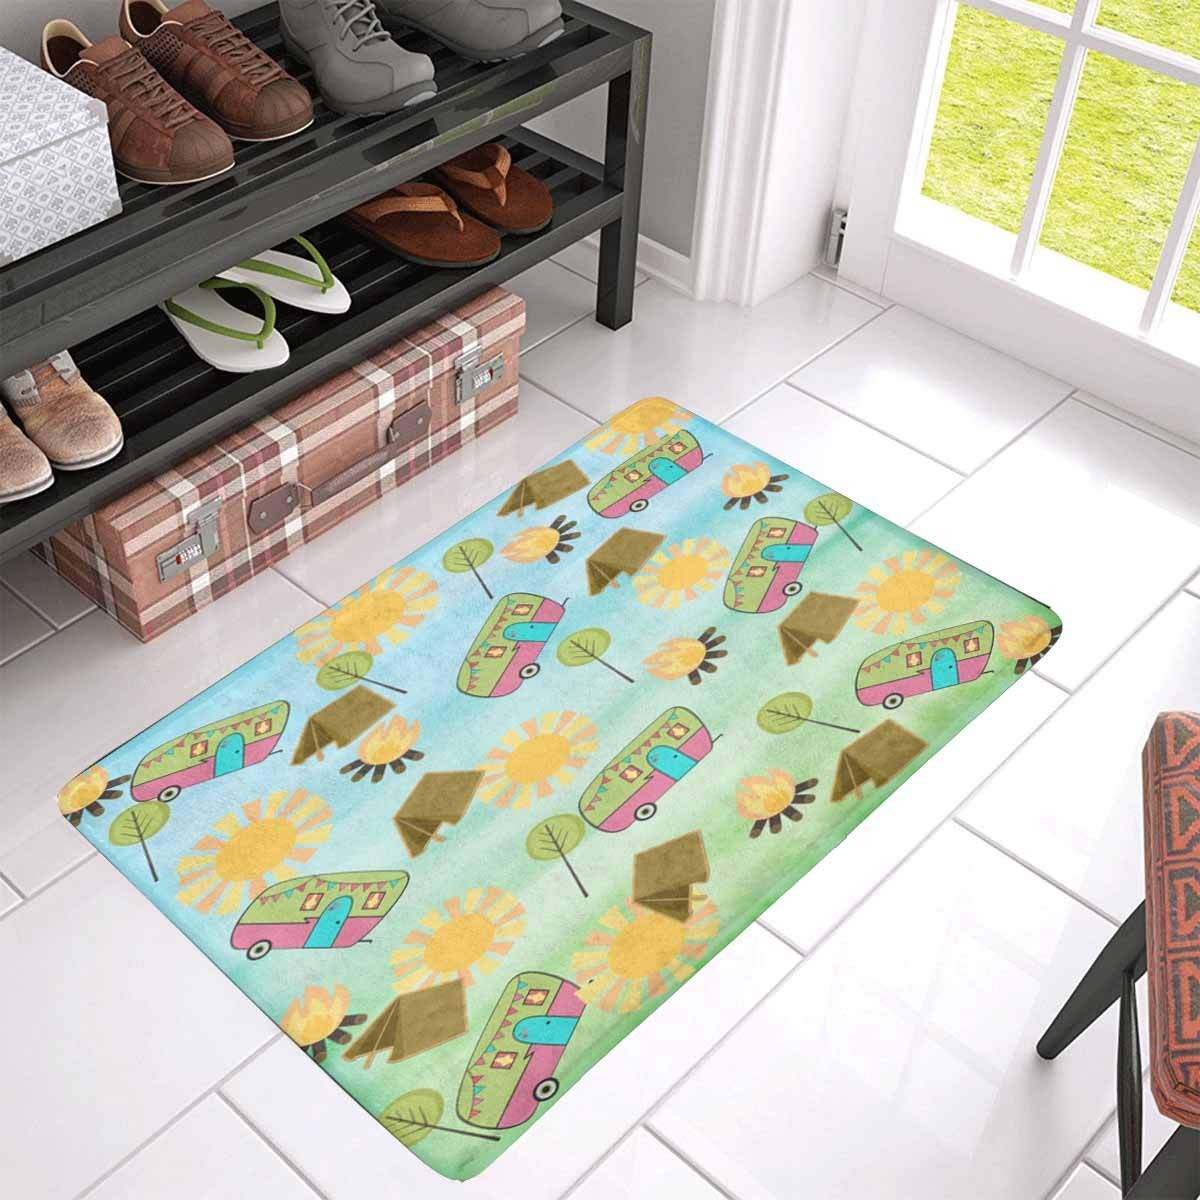 Bath Mat,Happy Camper Bathroom Carpet Rug,Non-Slip 3 Piece Bathroom Mat Set